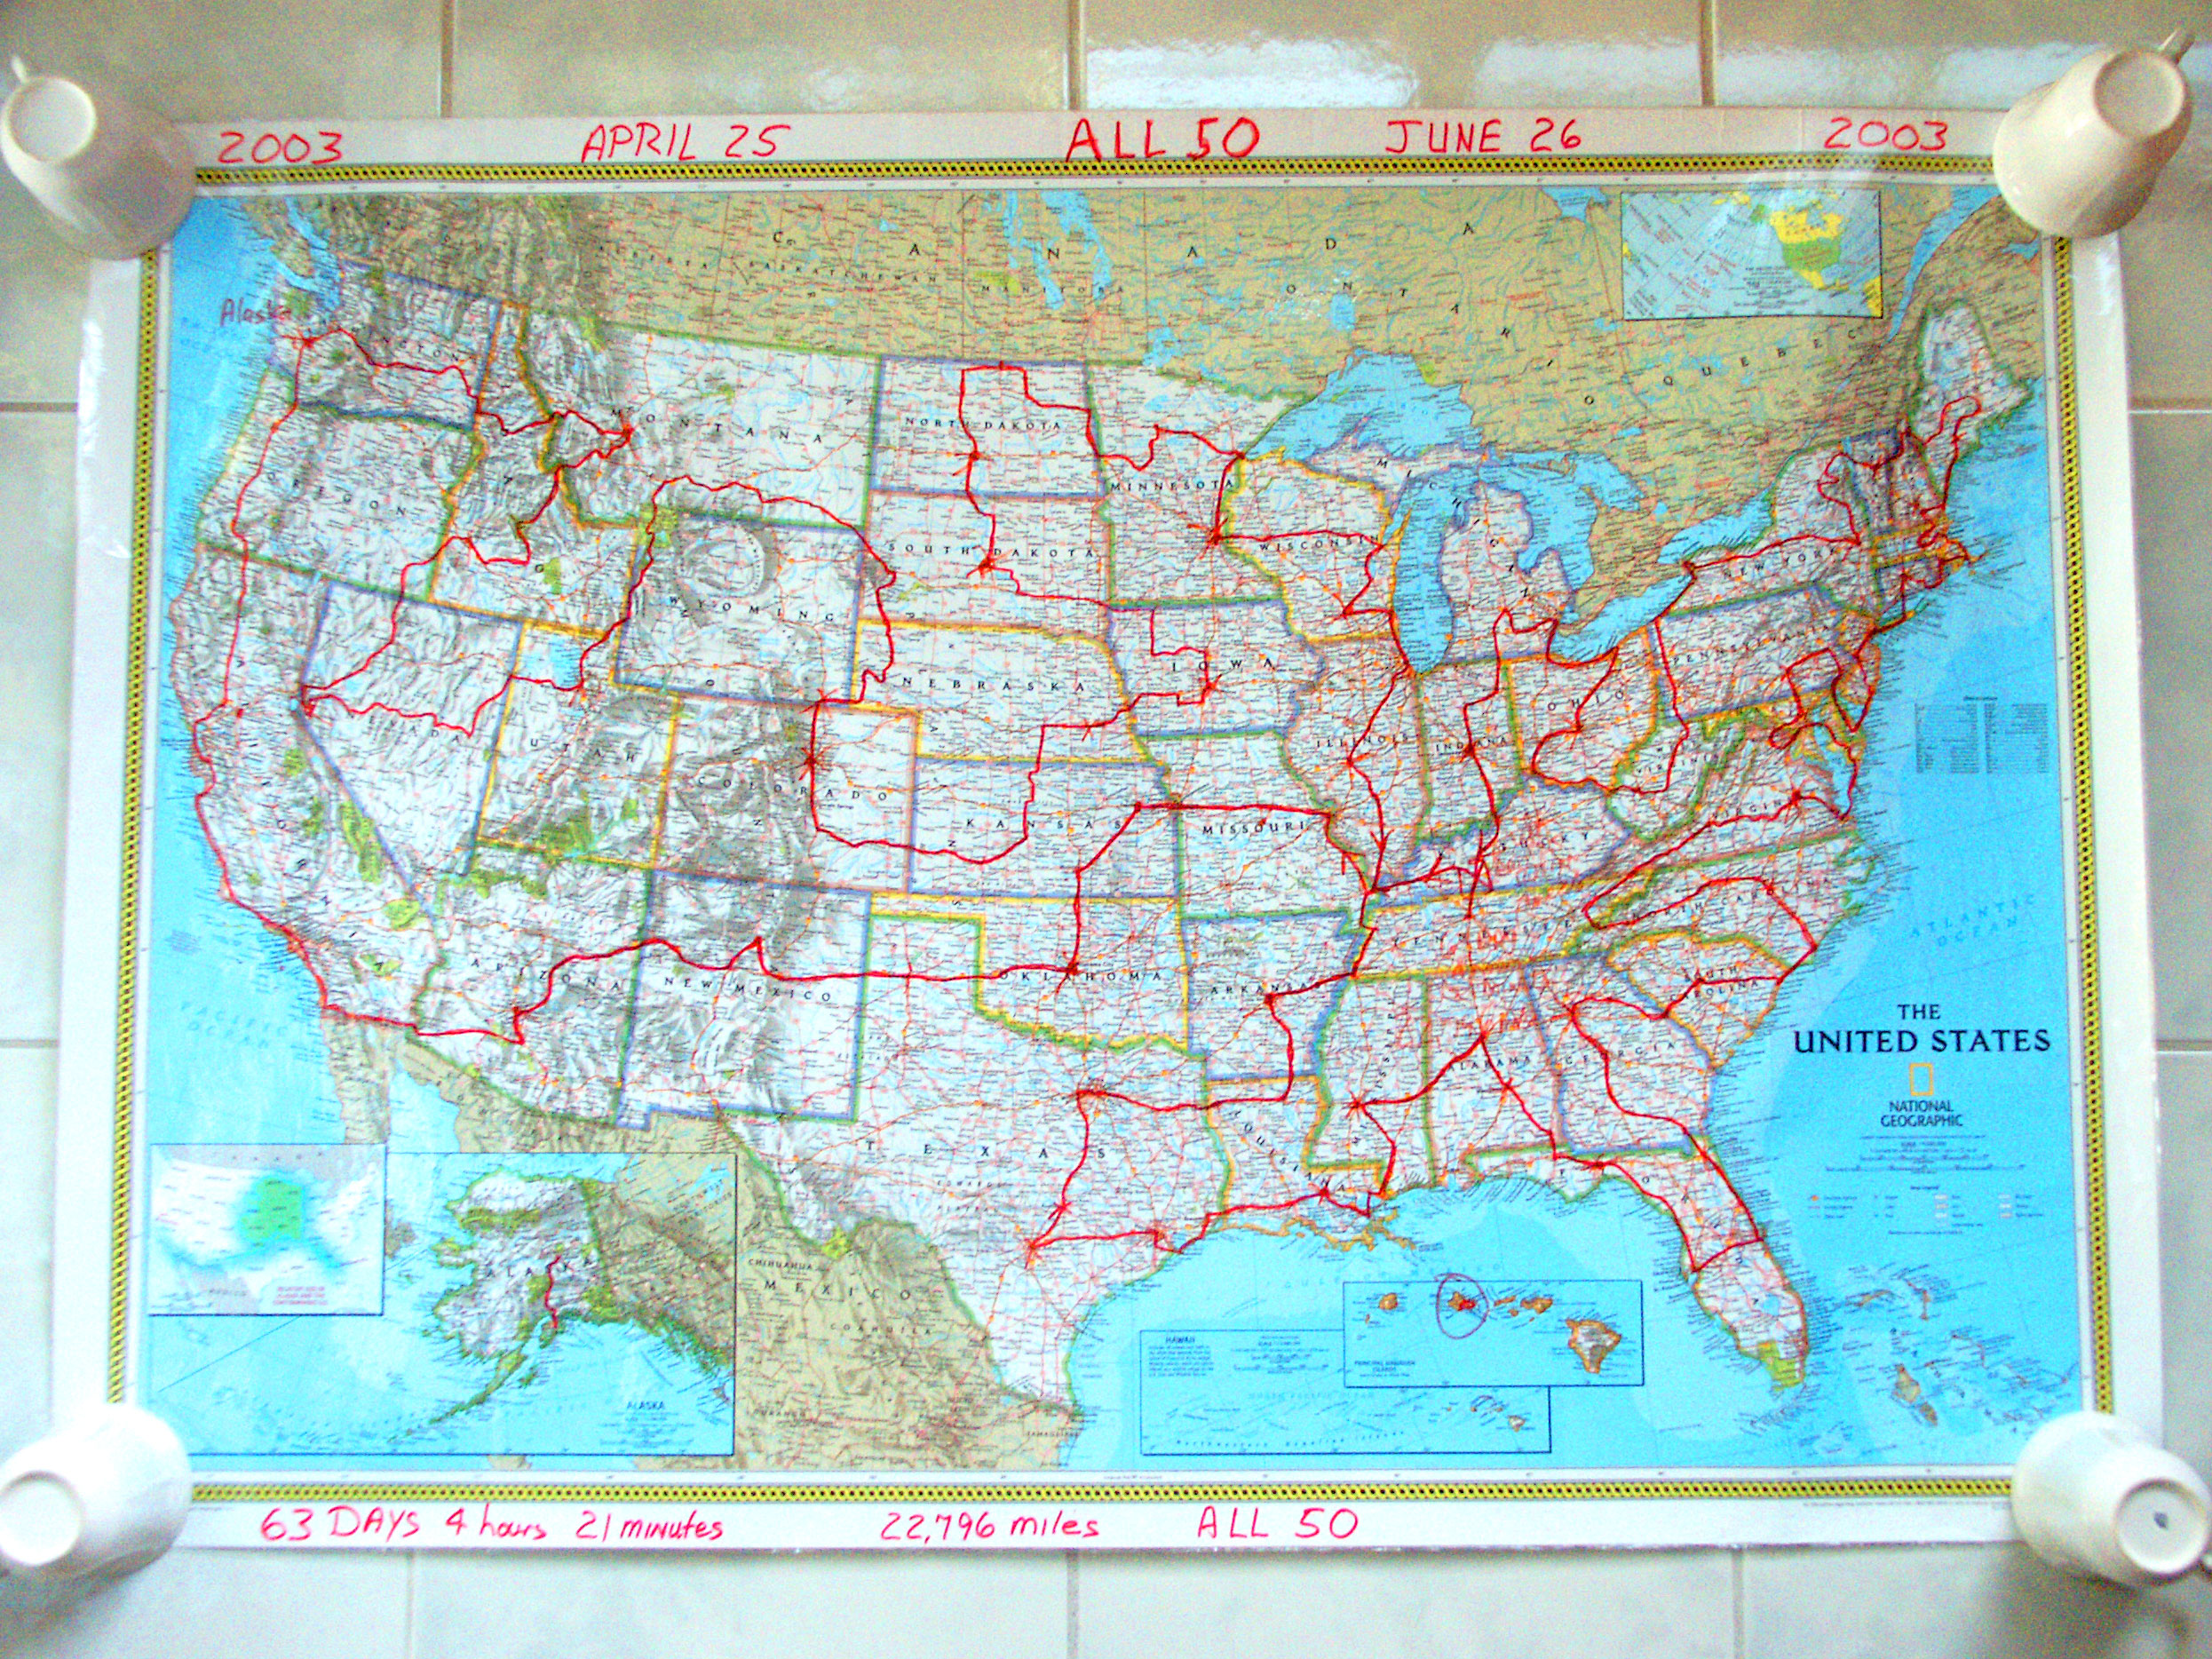 High-res enlargement of All 50 road trip